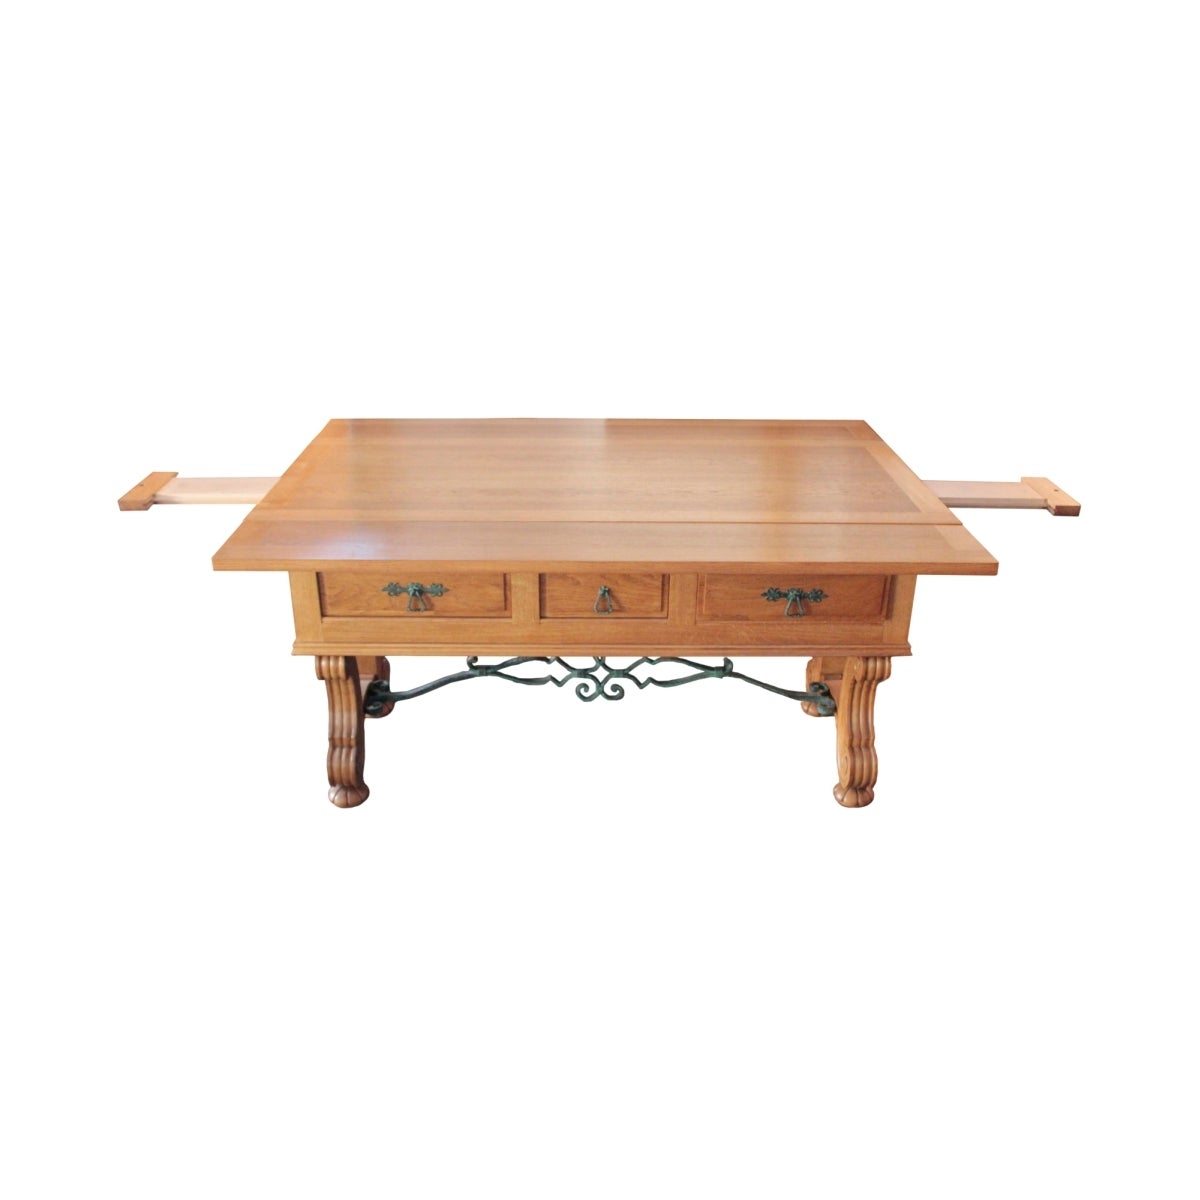 french 1940s banquet table with neo gothic motifs for sale at 1stdibs. Black Bedroom Furniture Sets. Home Design Ideas